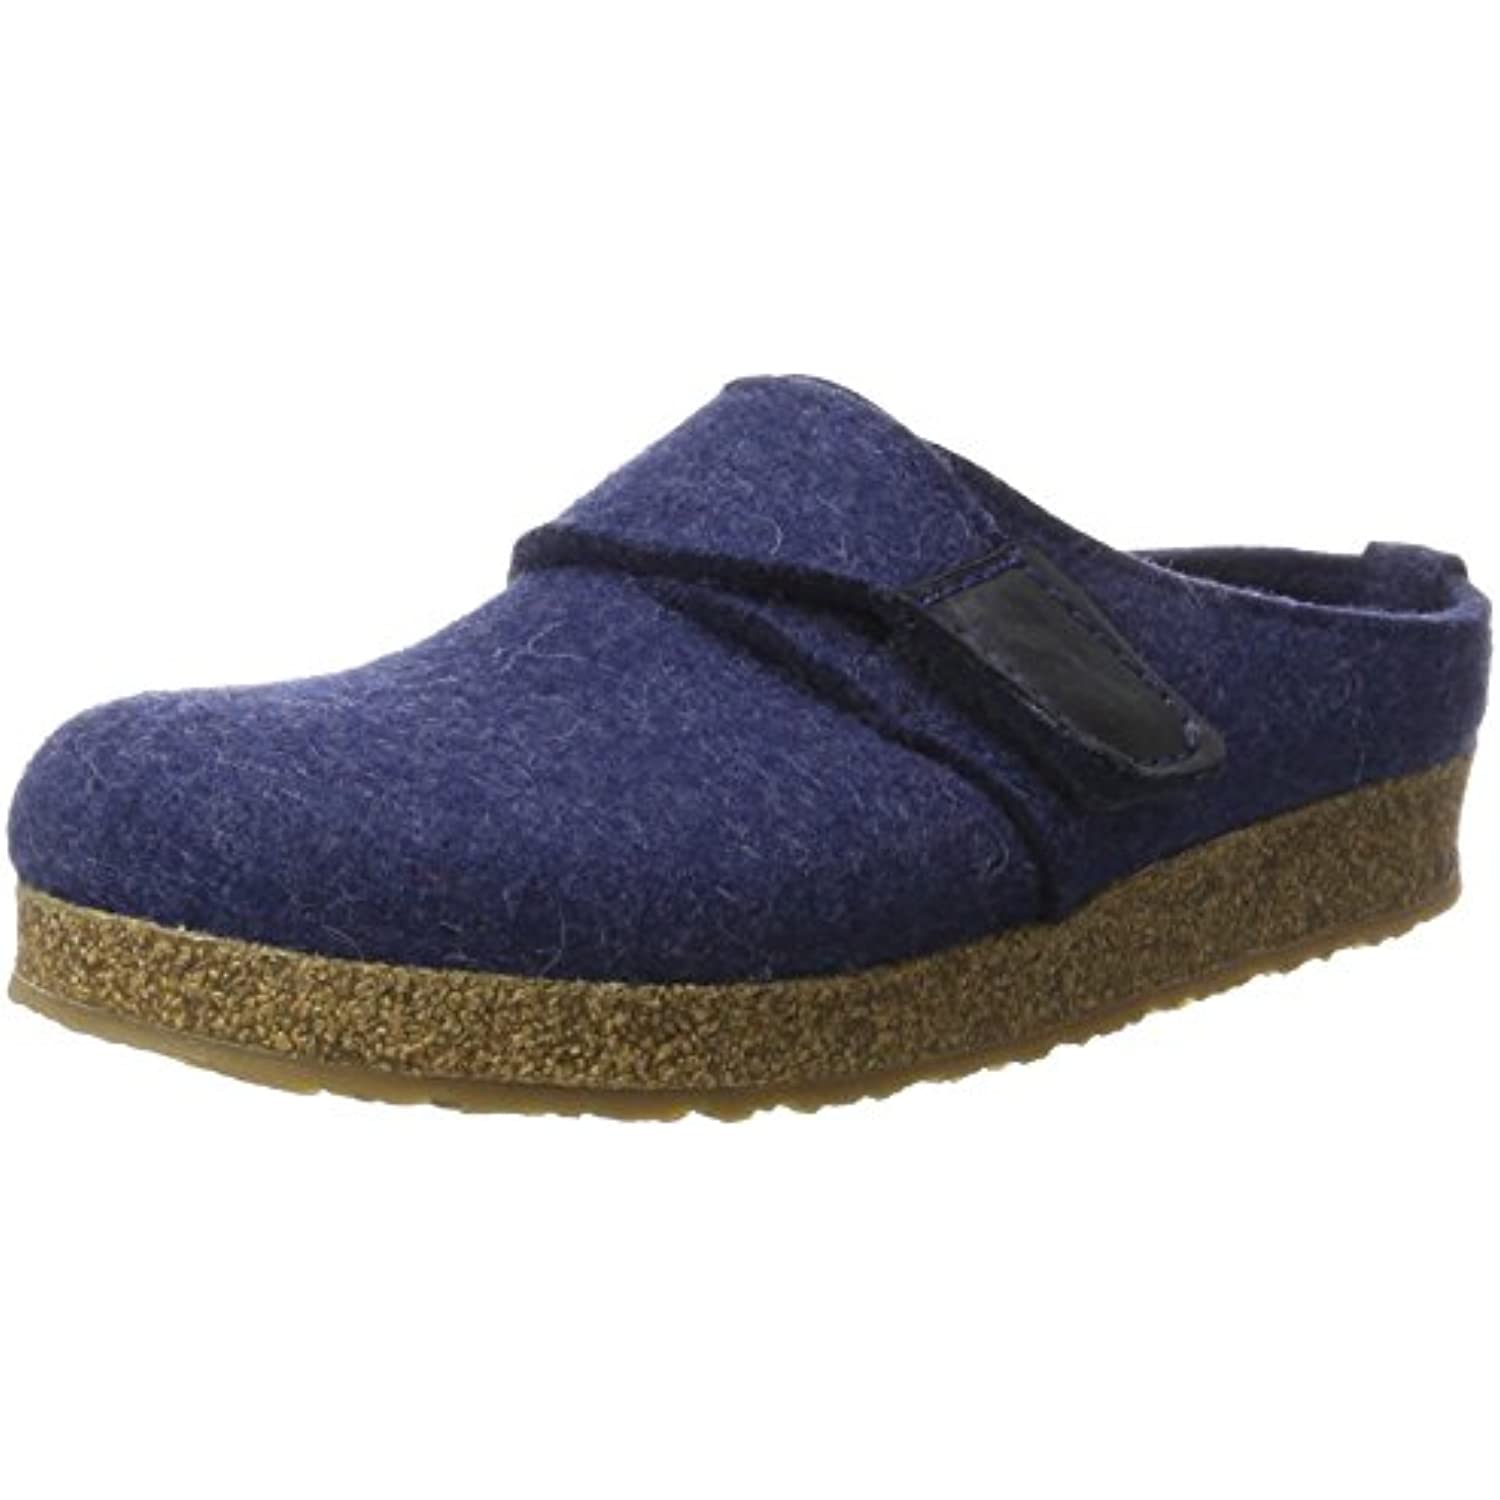 Haflinger Grizzly Ole, Chaussons - Mixte Adulte - Chaussons B06XPH7FY6 - 7352bd